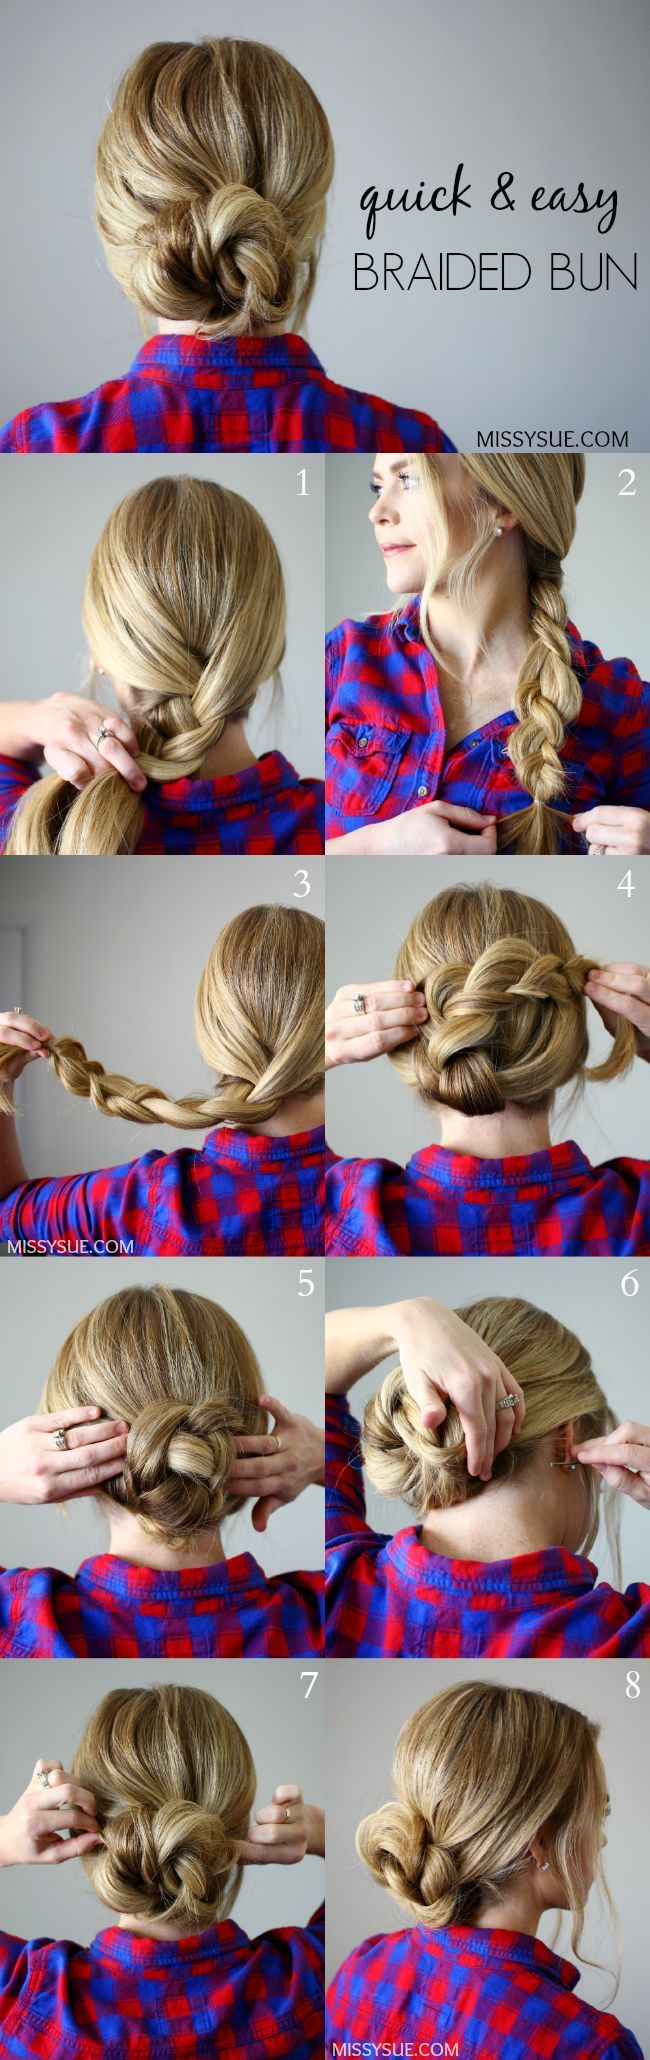 cool Low Bun Hair Tutorials And Celebrity Looks - fashionsy.com by http://www.danahaircuts.xyz/hair-tutorials/low-bun-hair-tutorials-and-celebrity-looks-fashionsy-com-2/